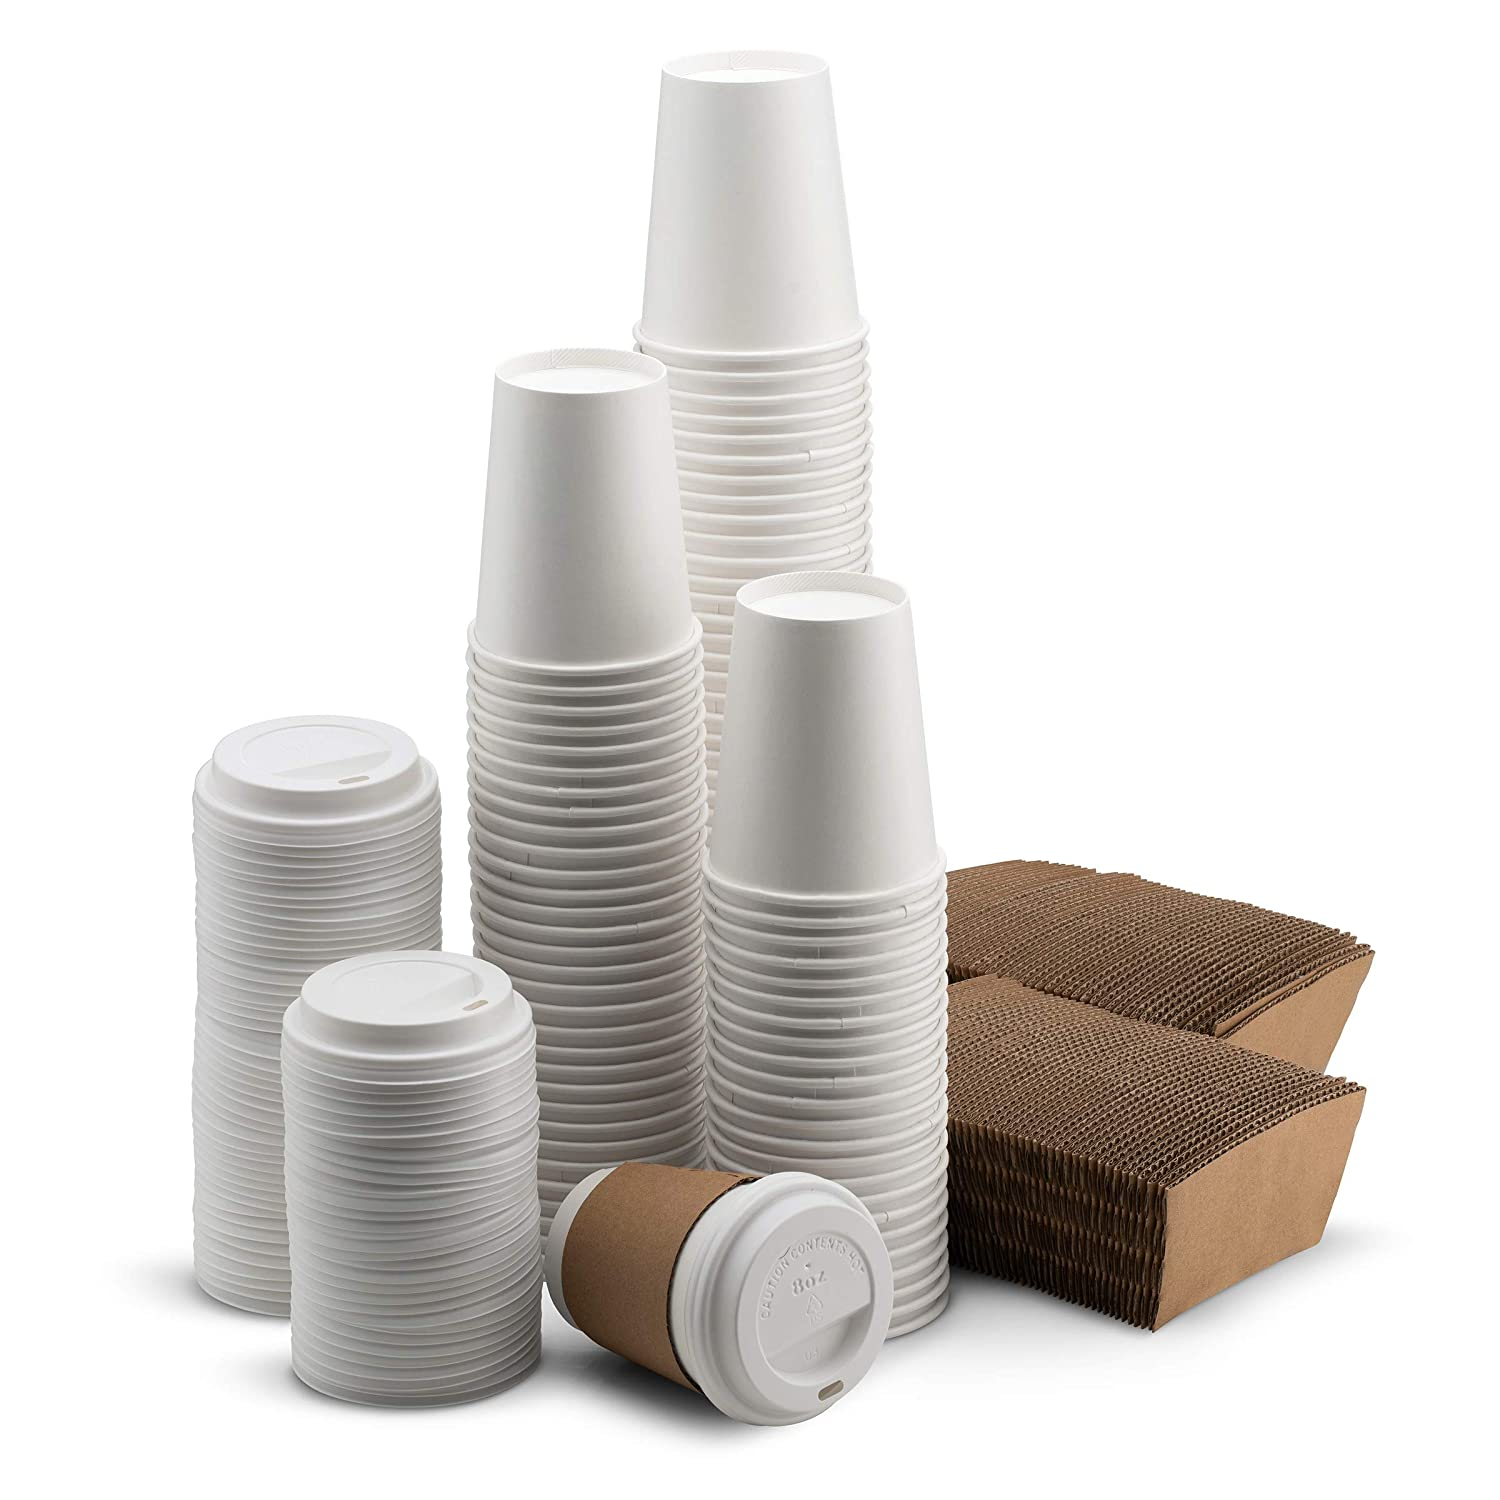 NYHI 200-Pack 8 oz White Paper Disposable Cups With Lids And Sleeves– Hot/Cold Beverage Drinking Cup for Water, Juice, Coffee or Tea – Ideal for Water Coolers, Party, or Coffee On the Go'